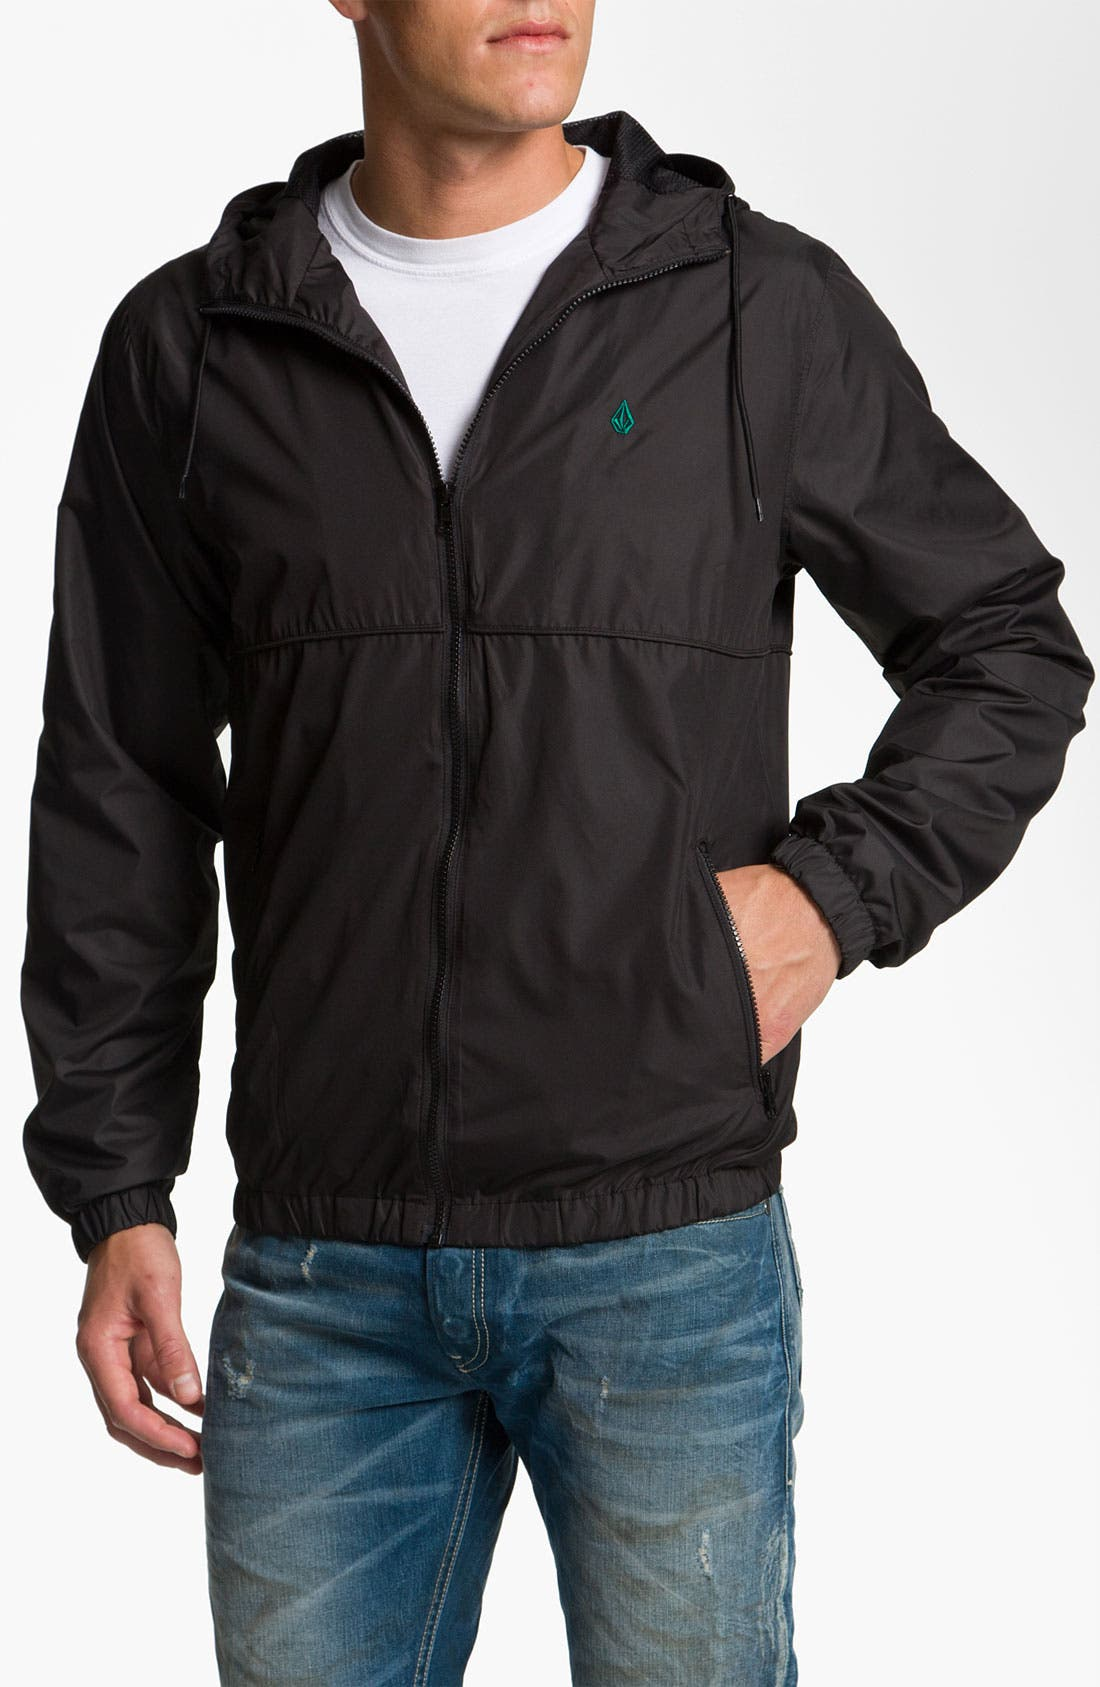 Alternate Image 1 Selected - Volcom 'Swisher' Windbreaker Jacket